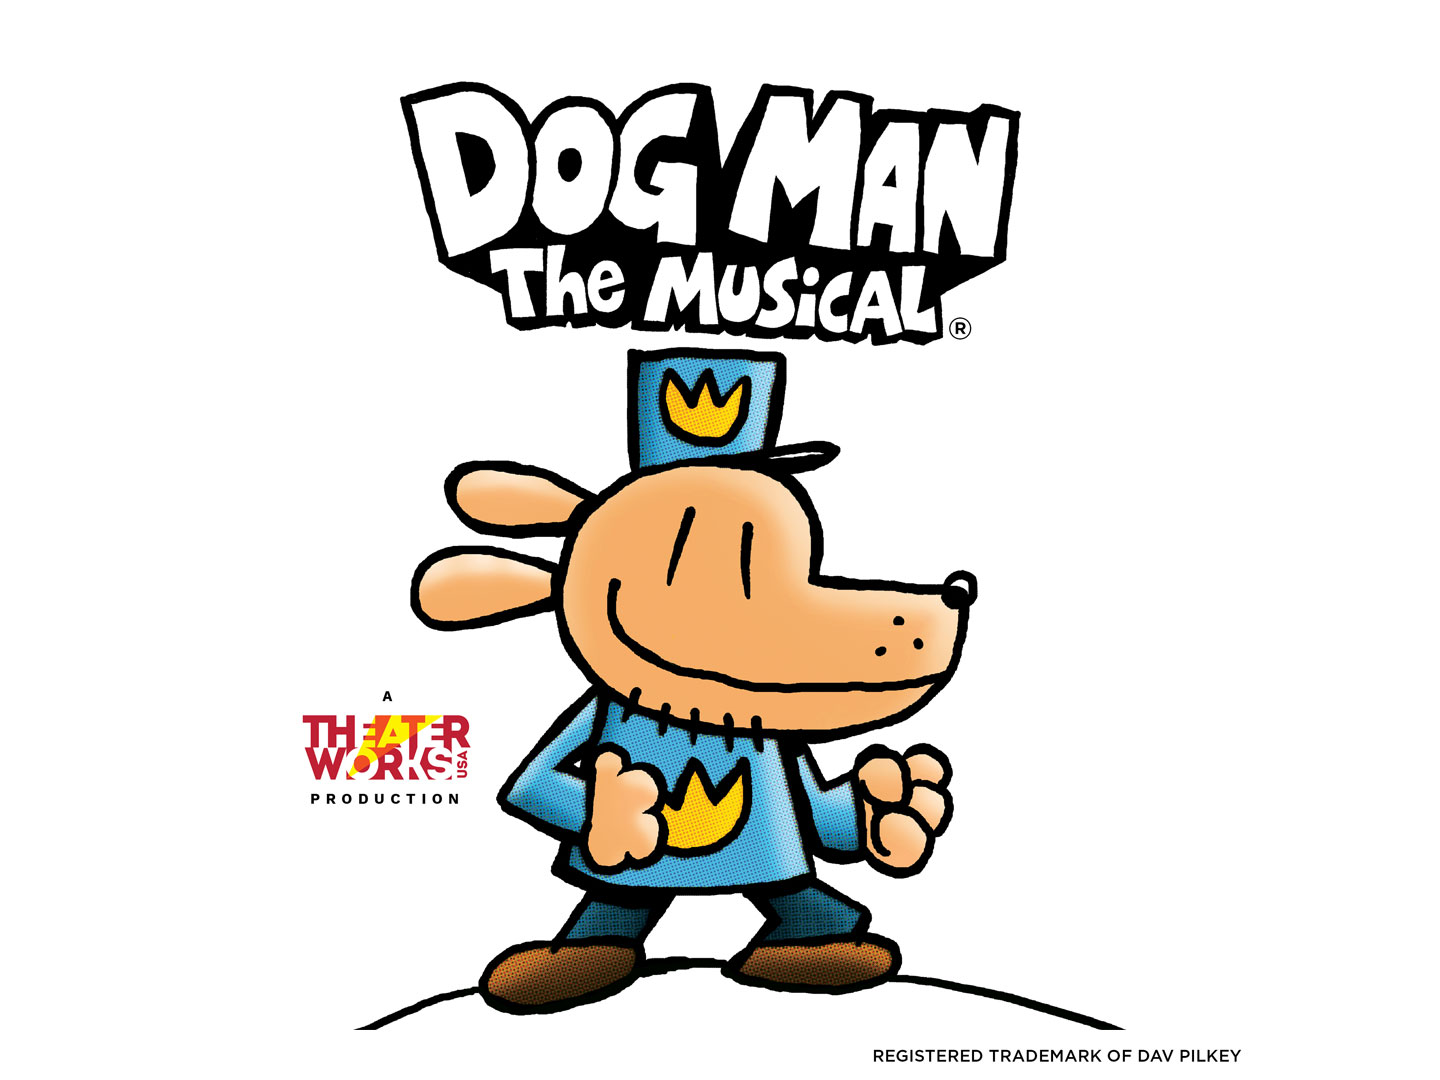 Dogman the Musical